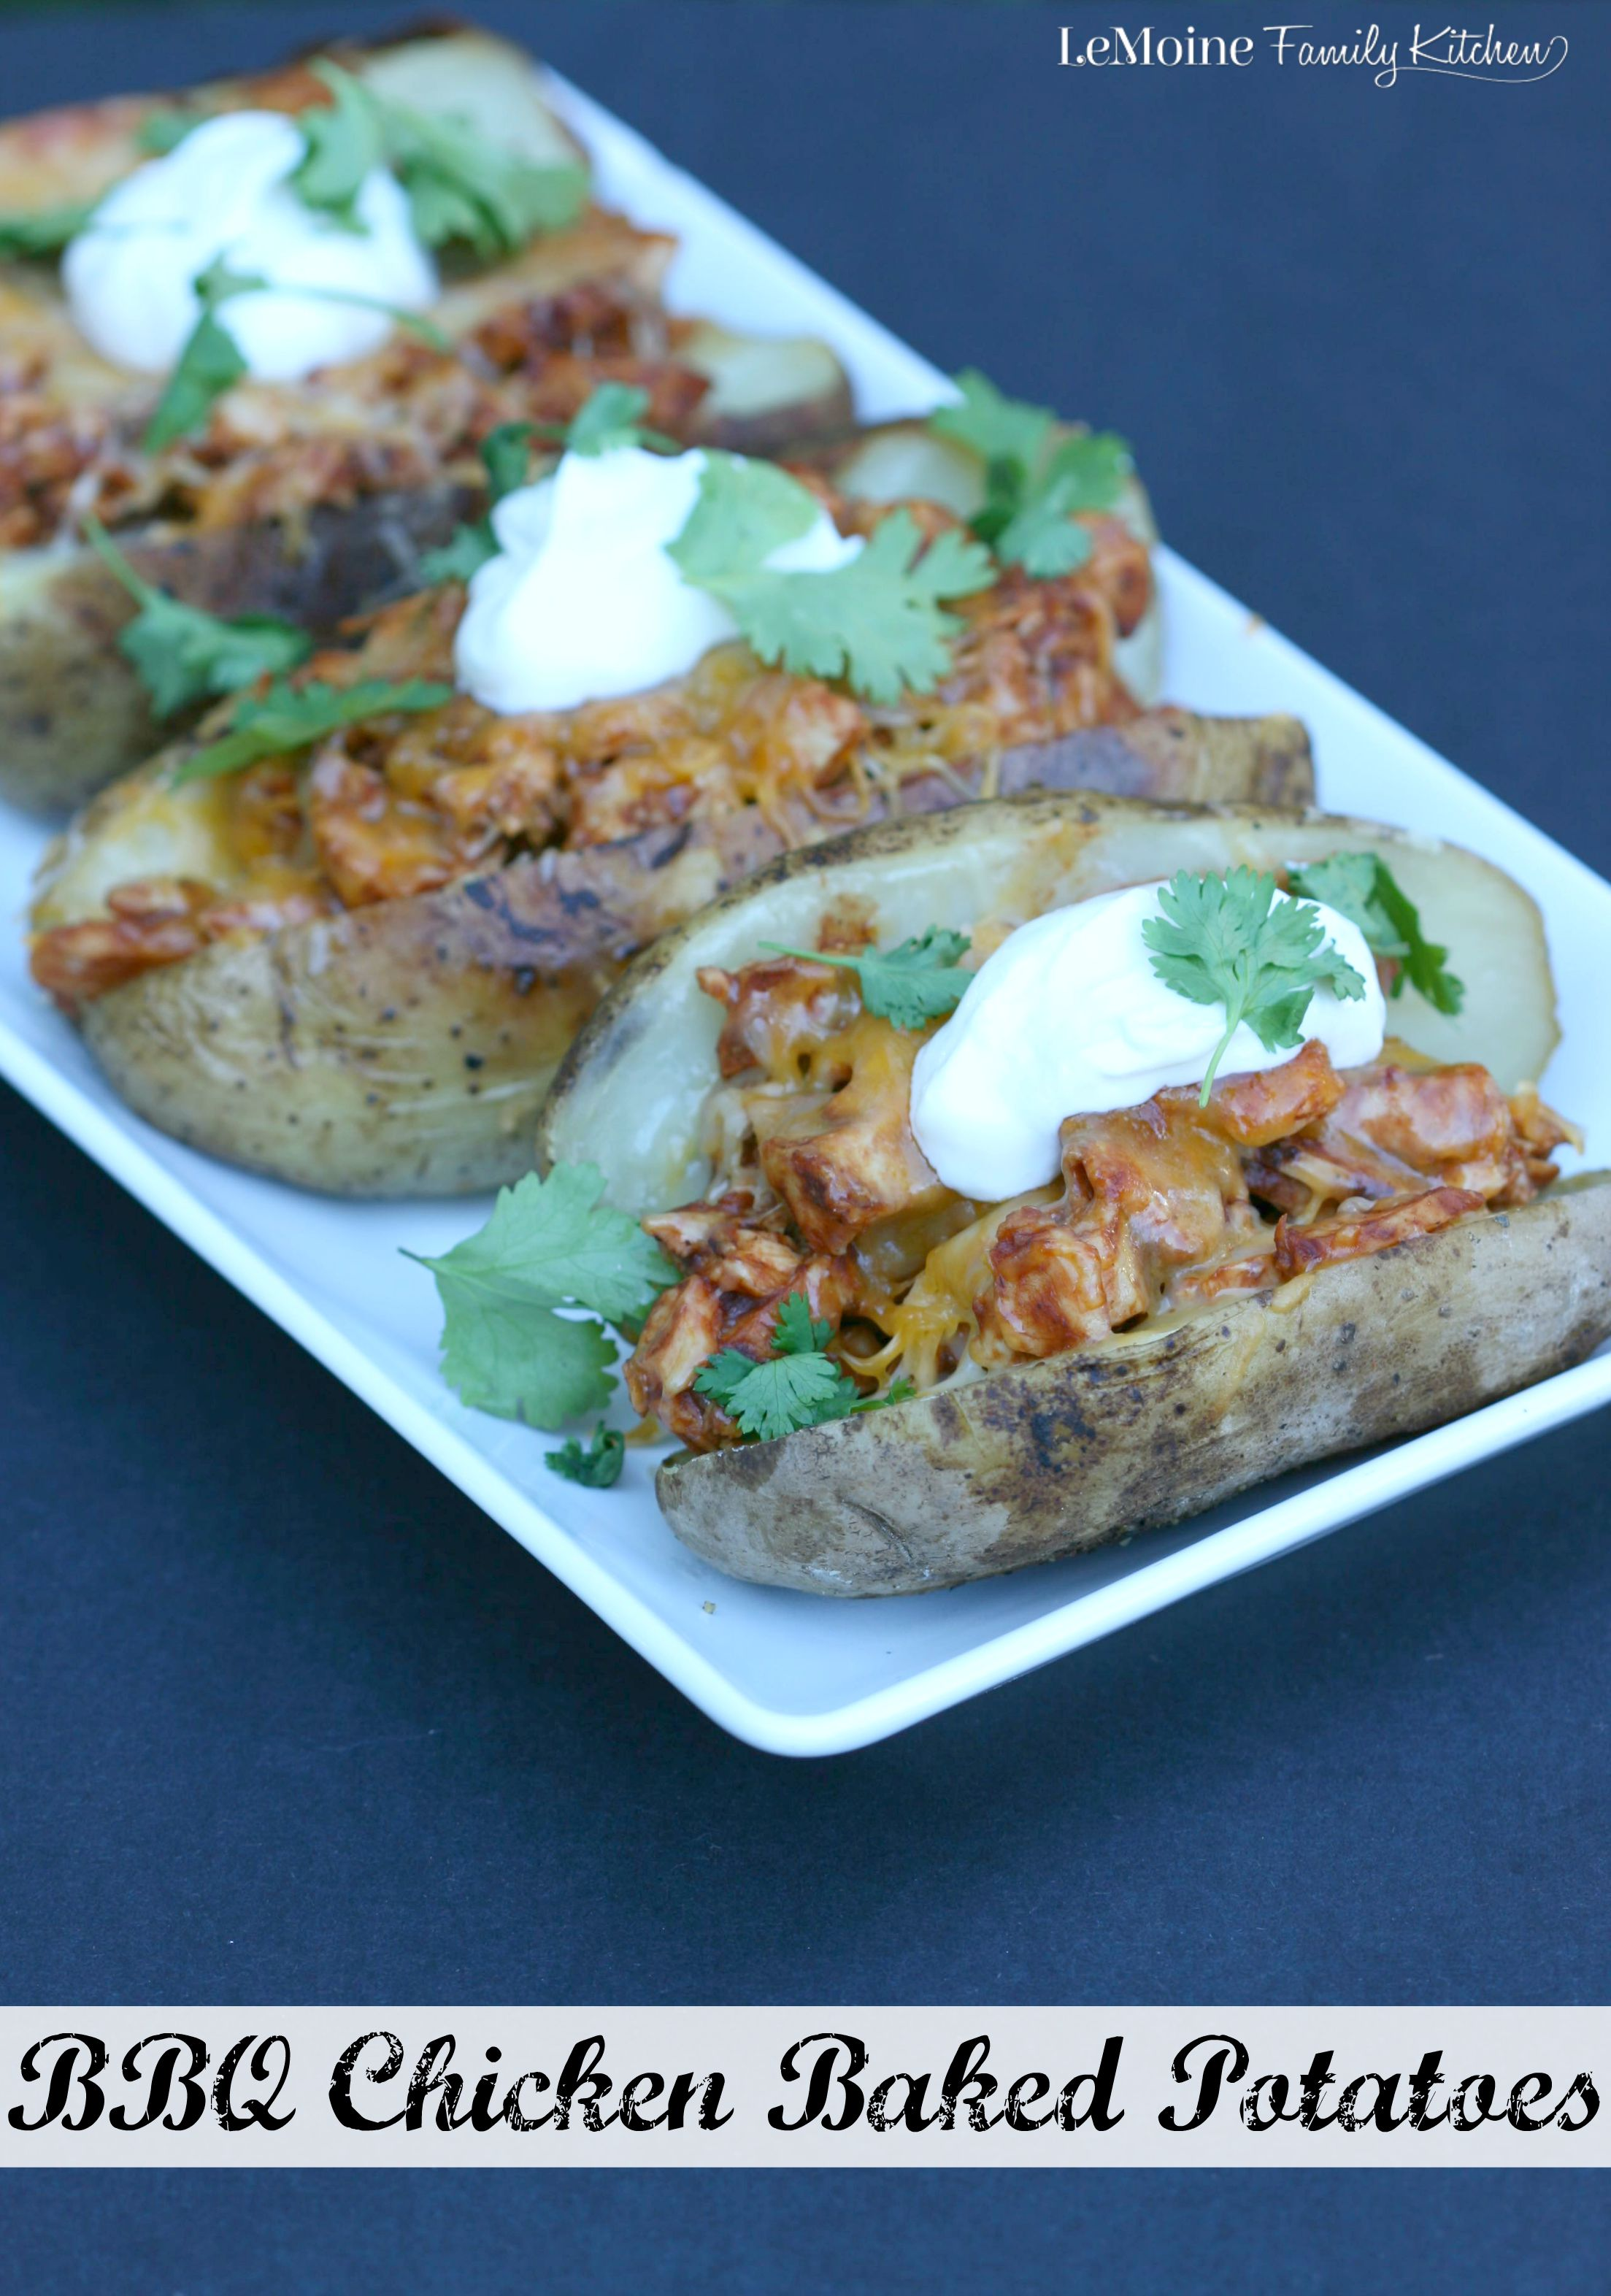 BBQ Chicken Baked Potatoes | LeMoine Family Kitchen. Easy weeknight meal. Diced up rotisserie chicken tossed with bbq sauce, placed inside a baked potato, topped with cheddar, sour cream and fresh cilantro. Delicious!